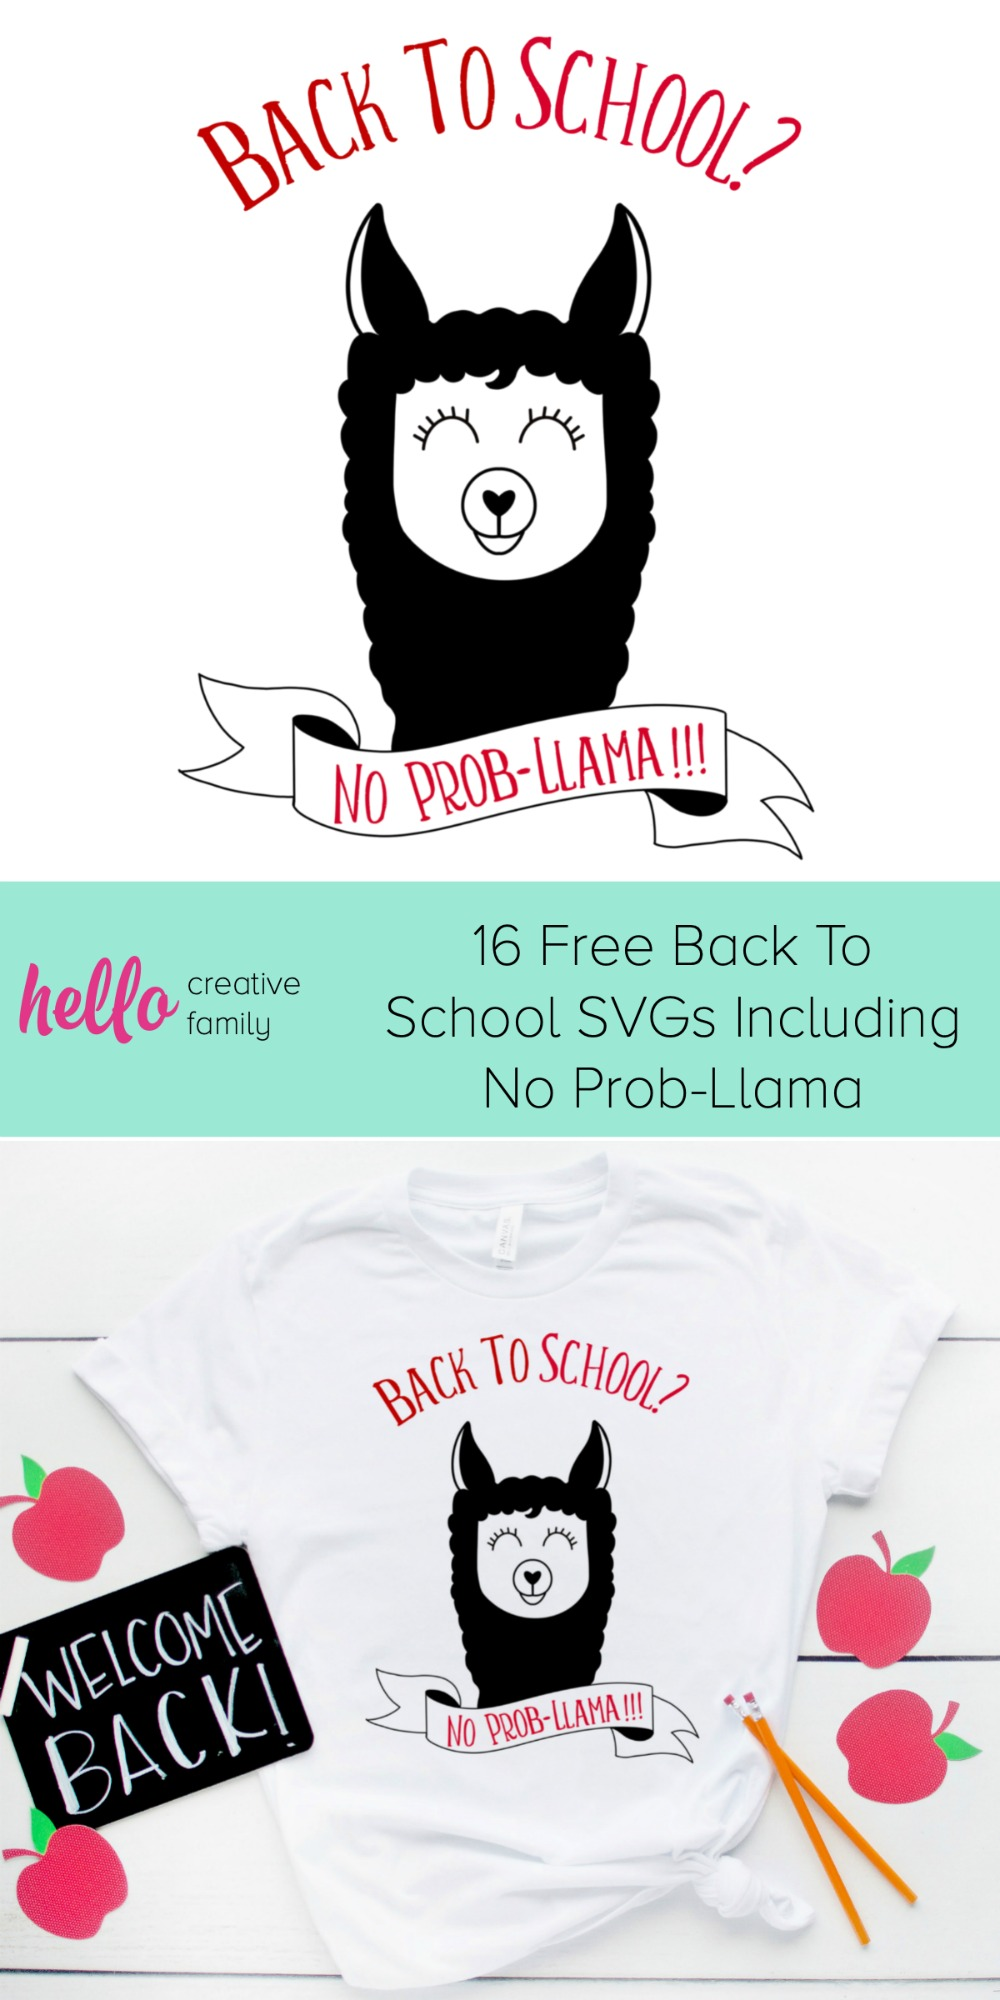 "Free Llama svg cut file! Whether you are looking for a DIY first day of school outfit, or an awesome handmade teacher gift-- we've got you covered!  We're sharing 16 free back to school svgs including our own ""Back to school? No Prob-llama"" cut file!  So pull out those Cricuts and Silhouettes and craft up an easy project! #Cricut #Silhouette #BackToSchool #Teacher #CutFile #FreeSVG #SVG"